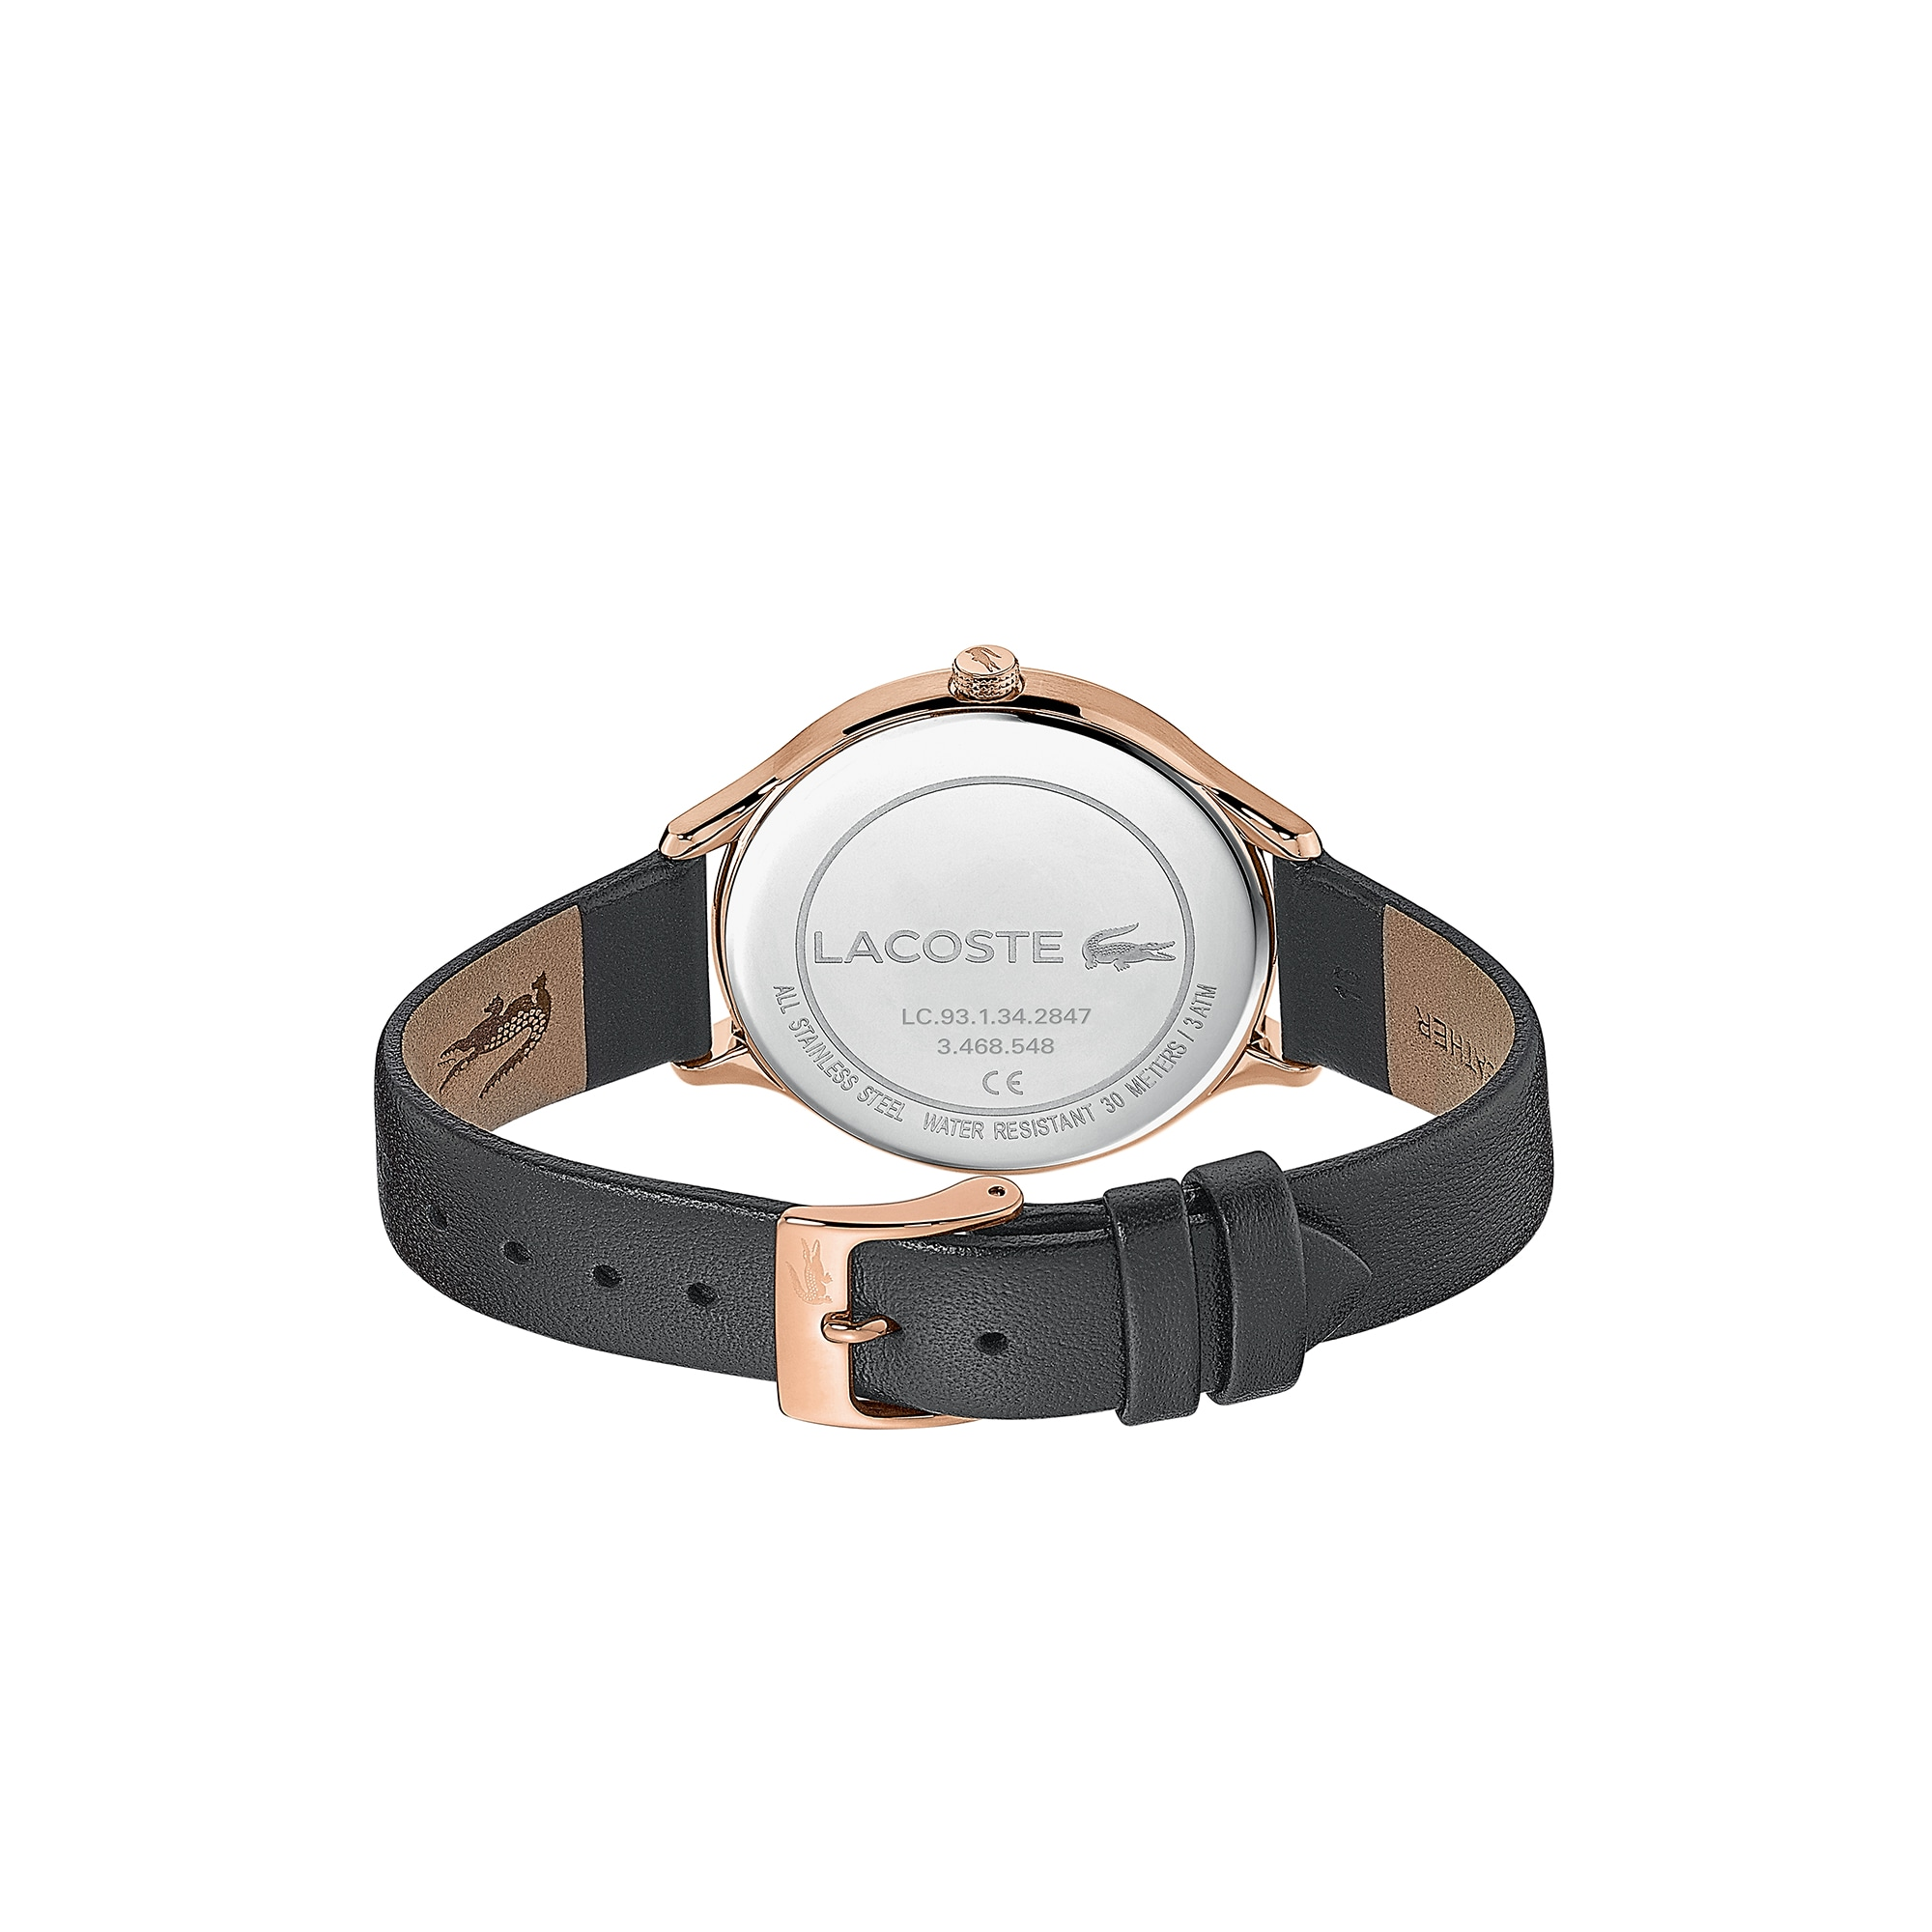 Ladies Constance Watch with Black Leather Strap